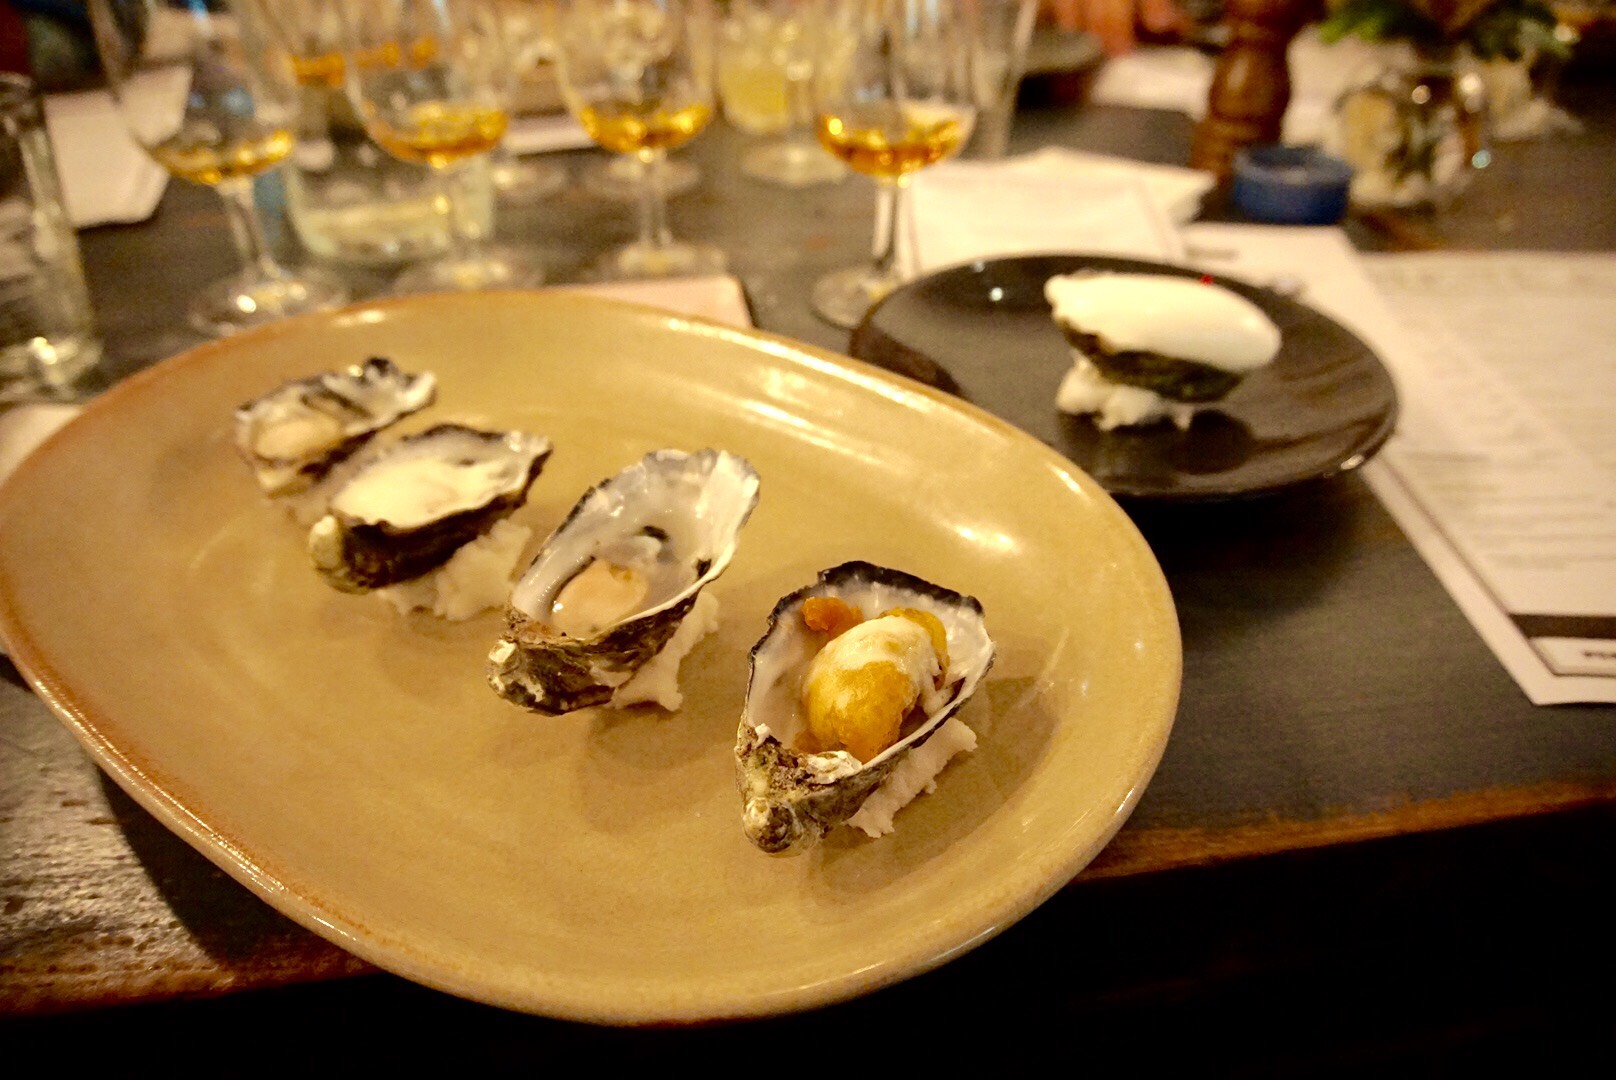 Check out the Oyster Beignet and the Laphroaig sorbet at the back!